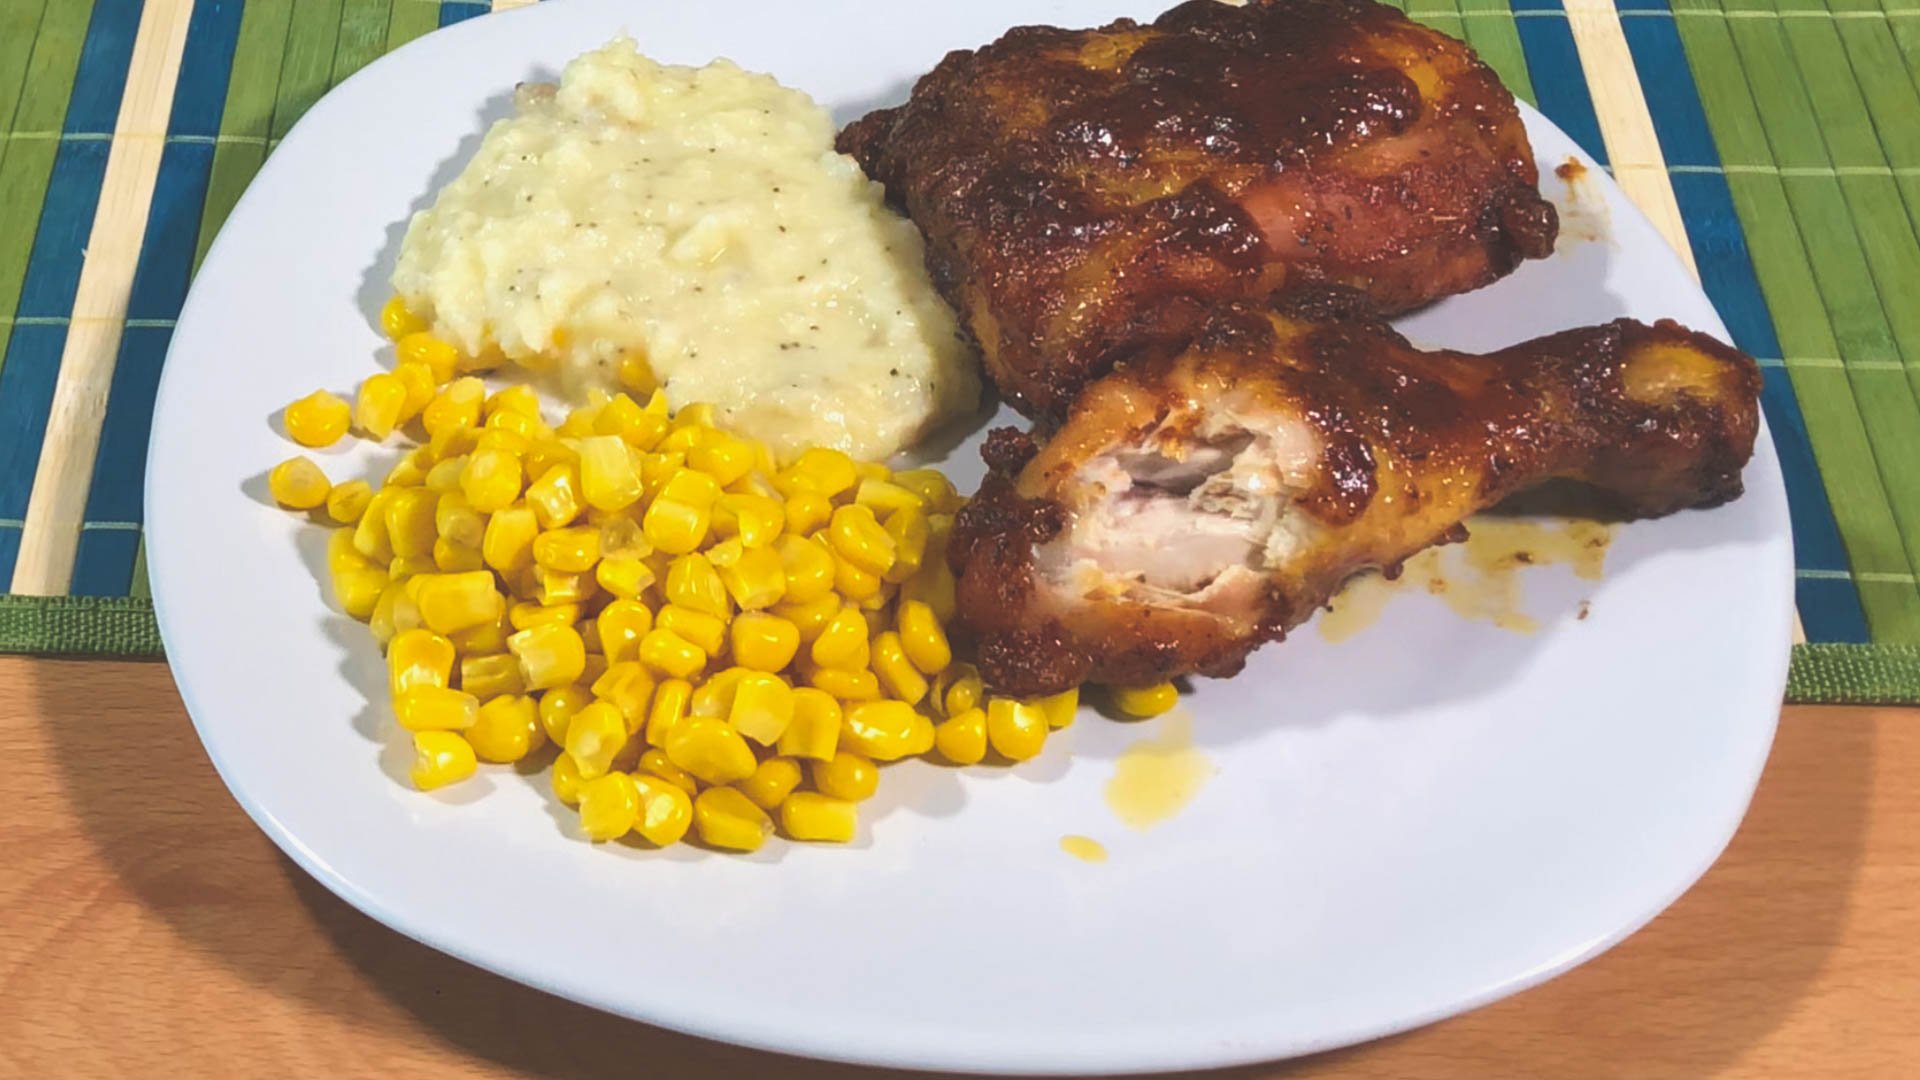 Serving Suggestion for the Smoked Easy BBQ Chicken